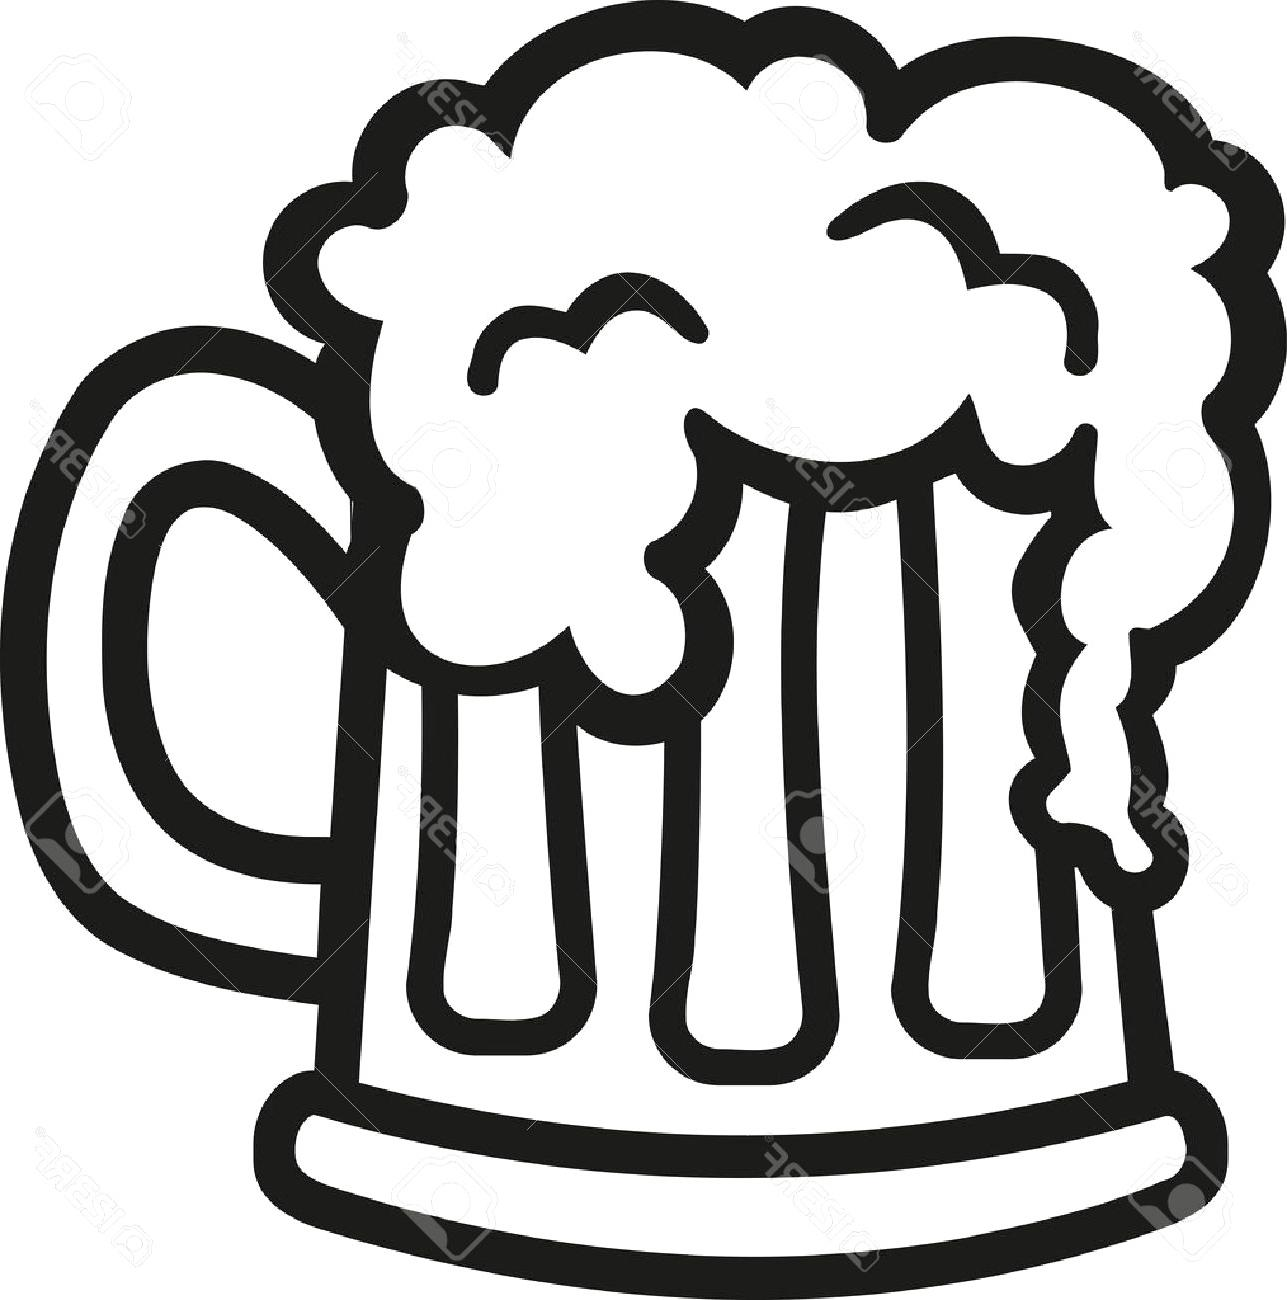 Beer clipart black and white transparent stock Top Beer Glass Clip Art Black And White Cdr » Free Vector Art ... transparent stock